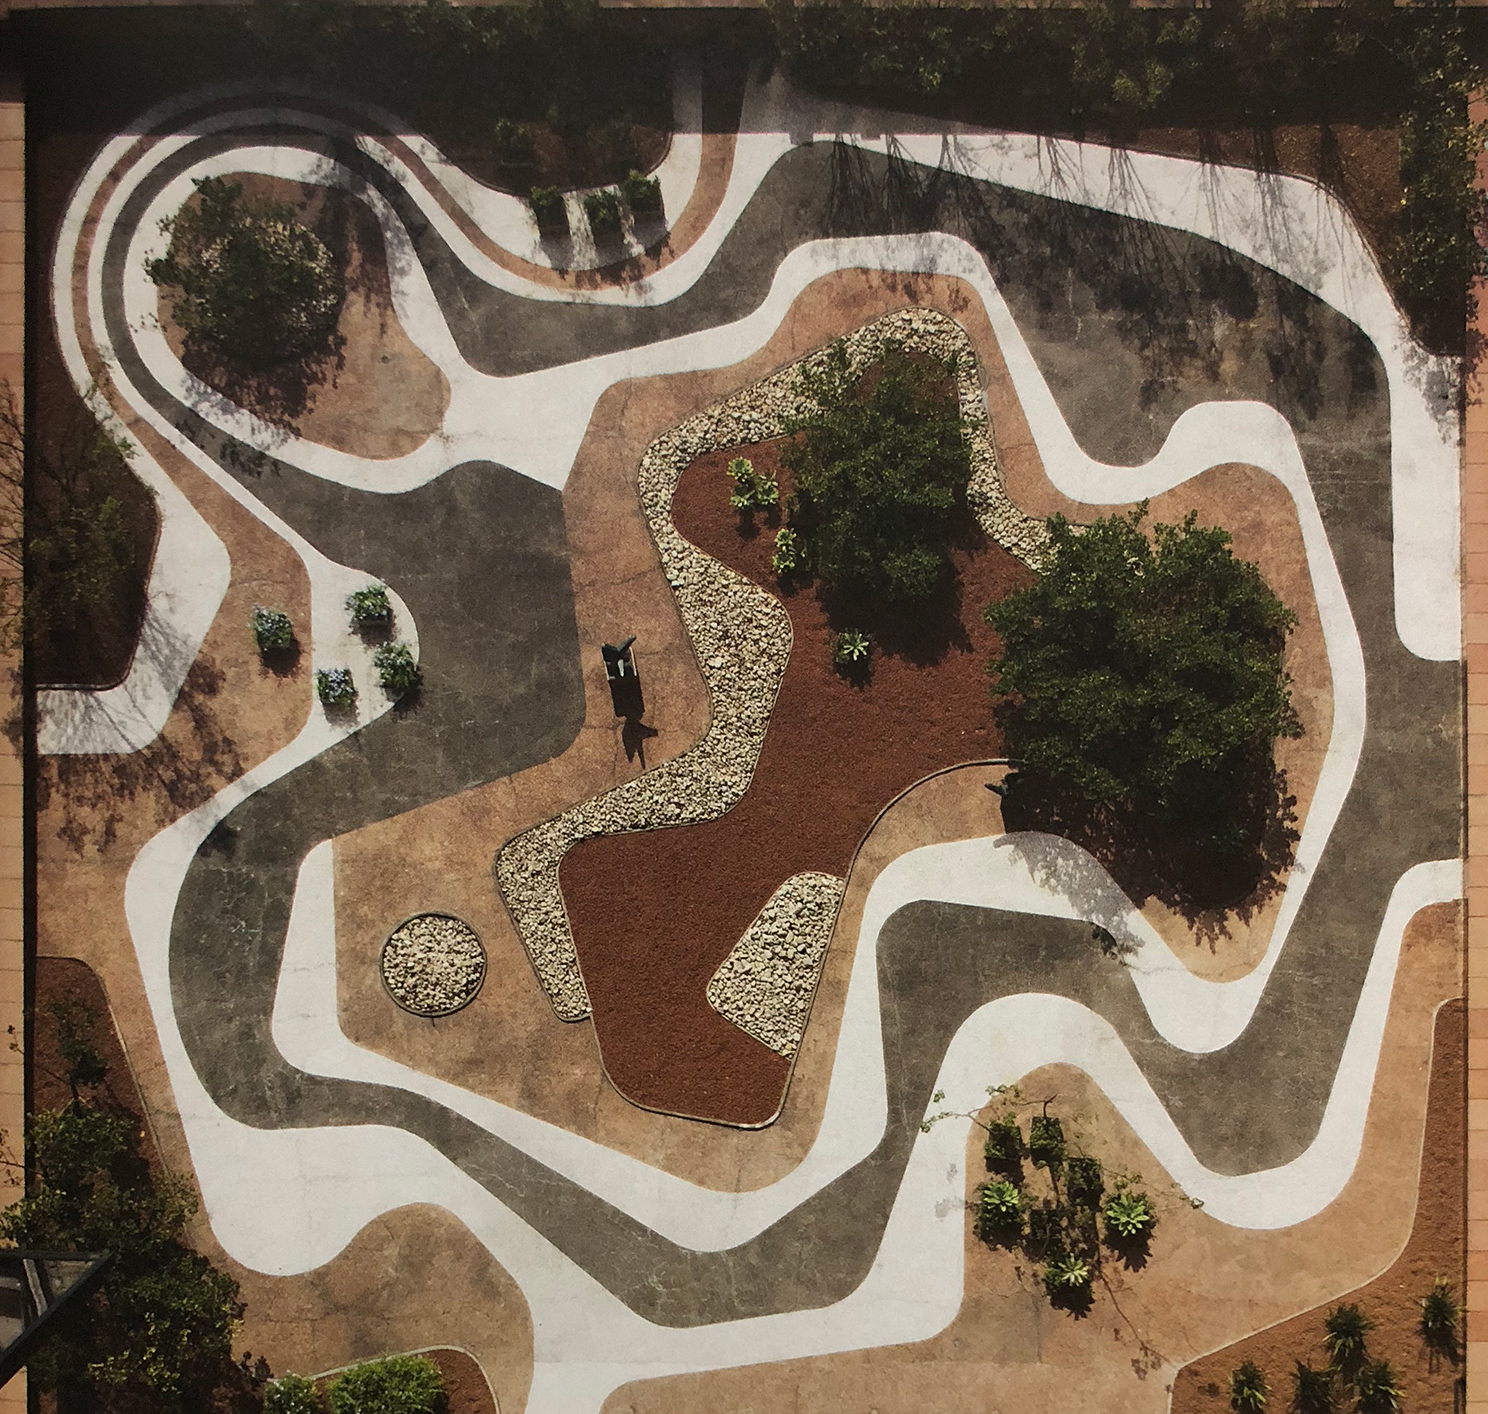 3.  Roberto Burle Marx, Mineral roof garden, Banco Safra Headquarters, 1983, São Paulo.  Roberto Burle Marx - Brazilian Modernist , 2015, The Jewish Museum, New York